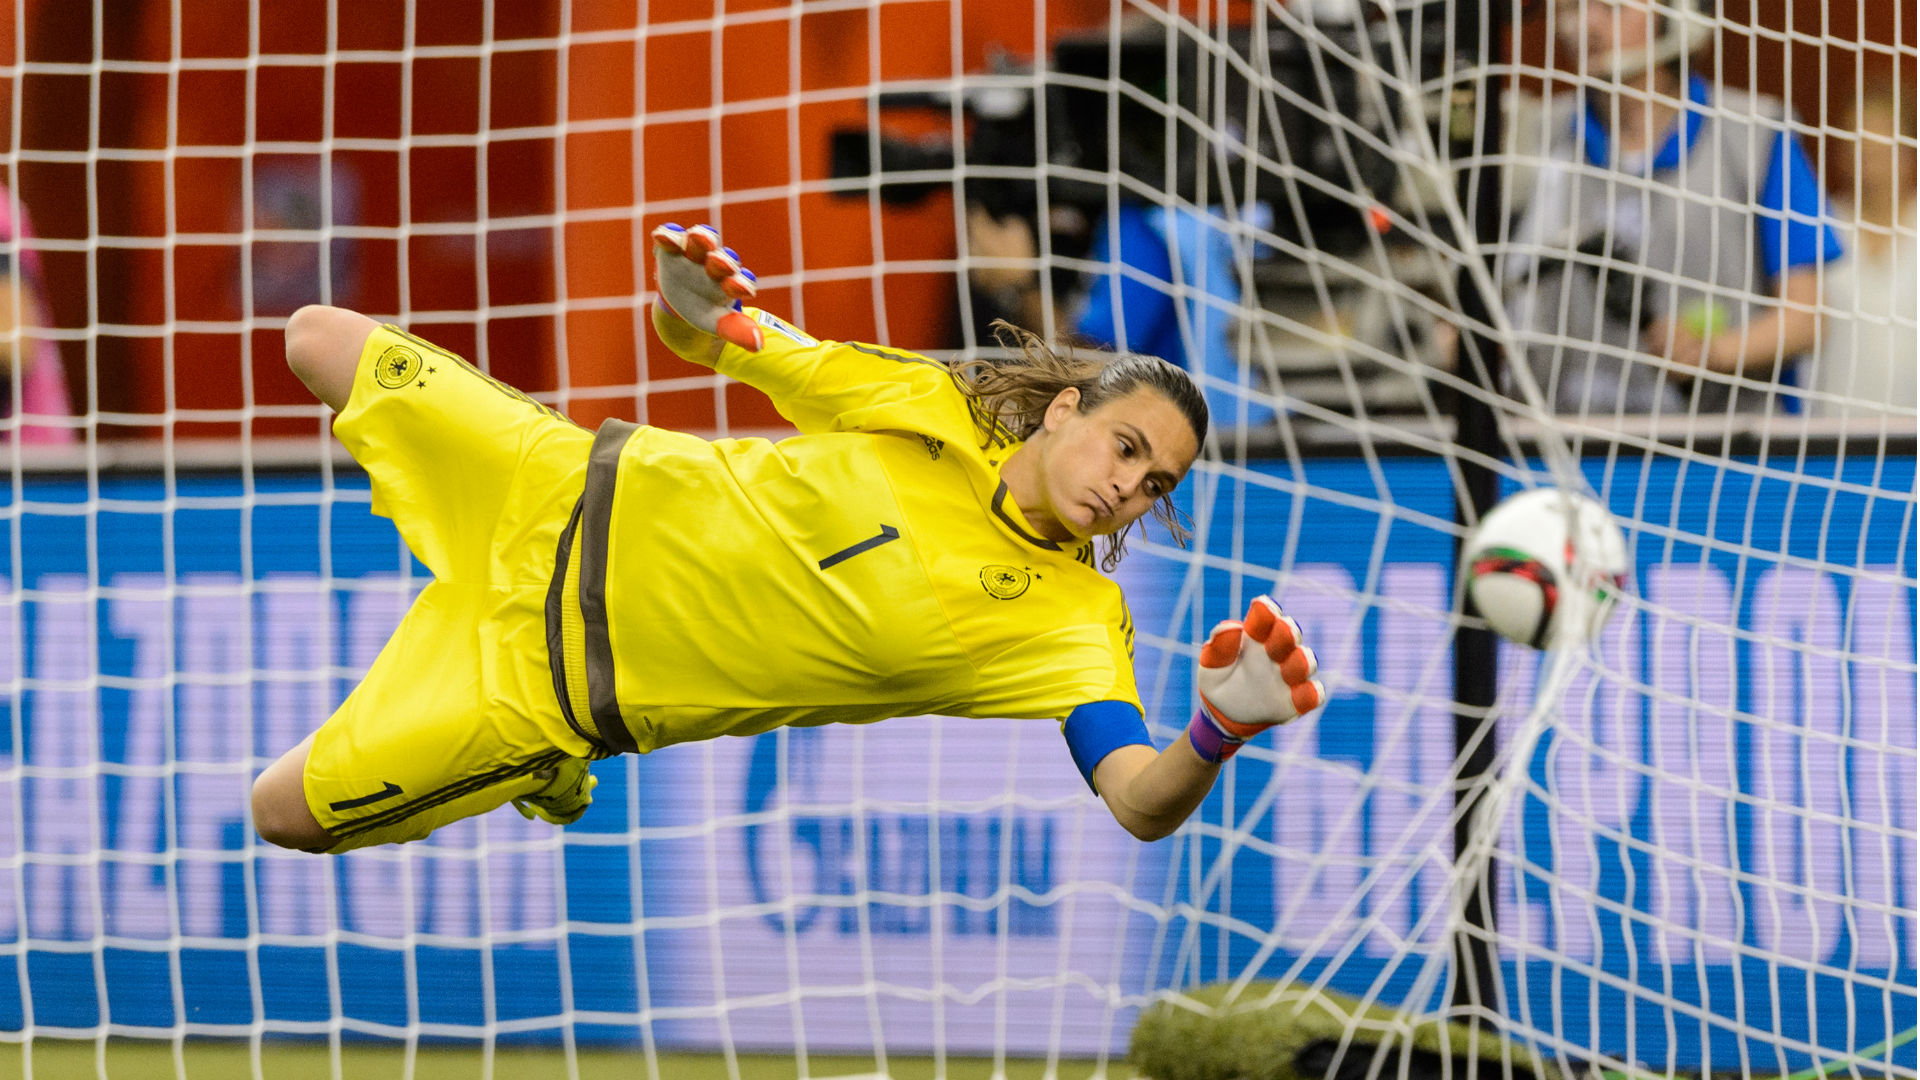 Women's World Cup, USA vs. Germany: Who is Nadine Angerer?